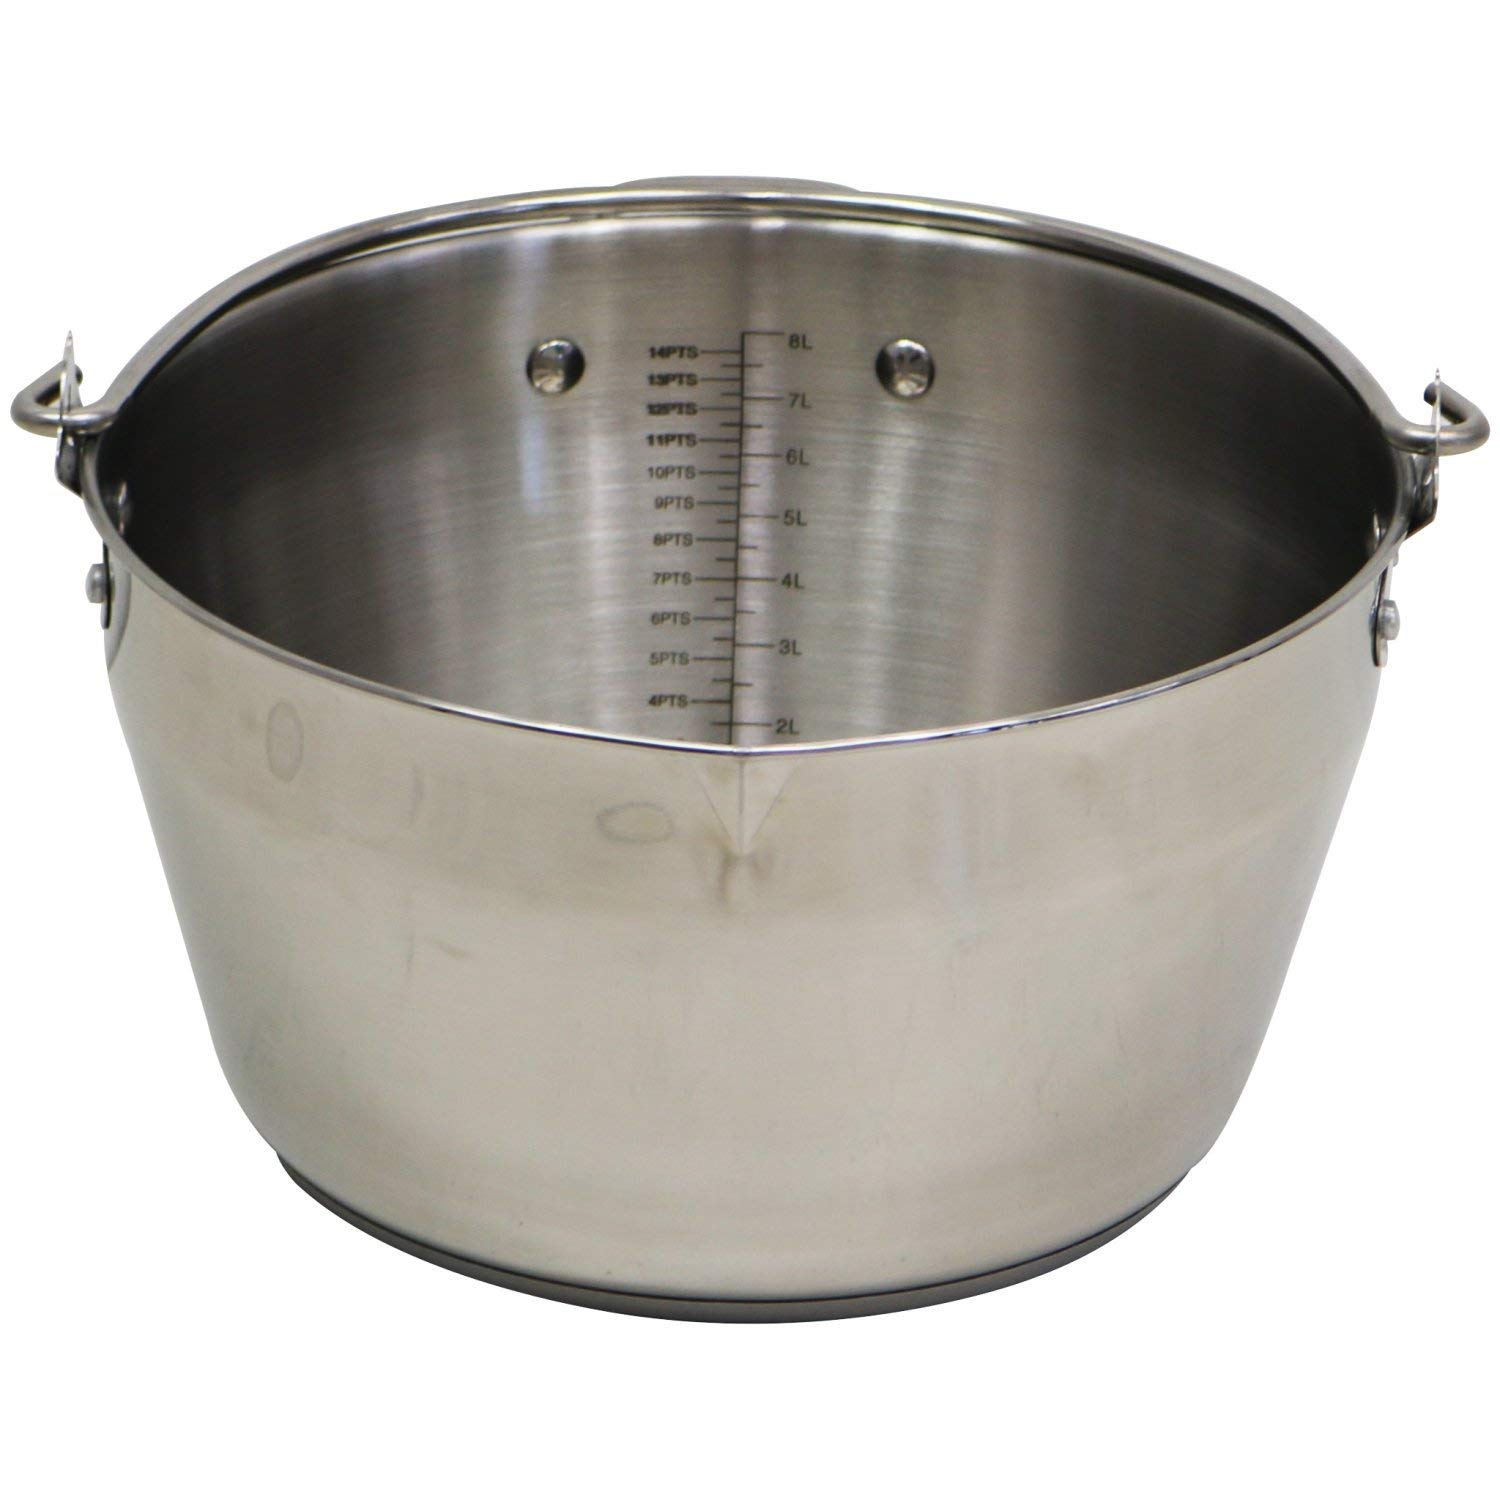 Oypla 9L Stainless Steel Maslin Jam Preserving Pan with Handle